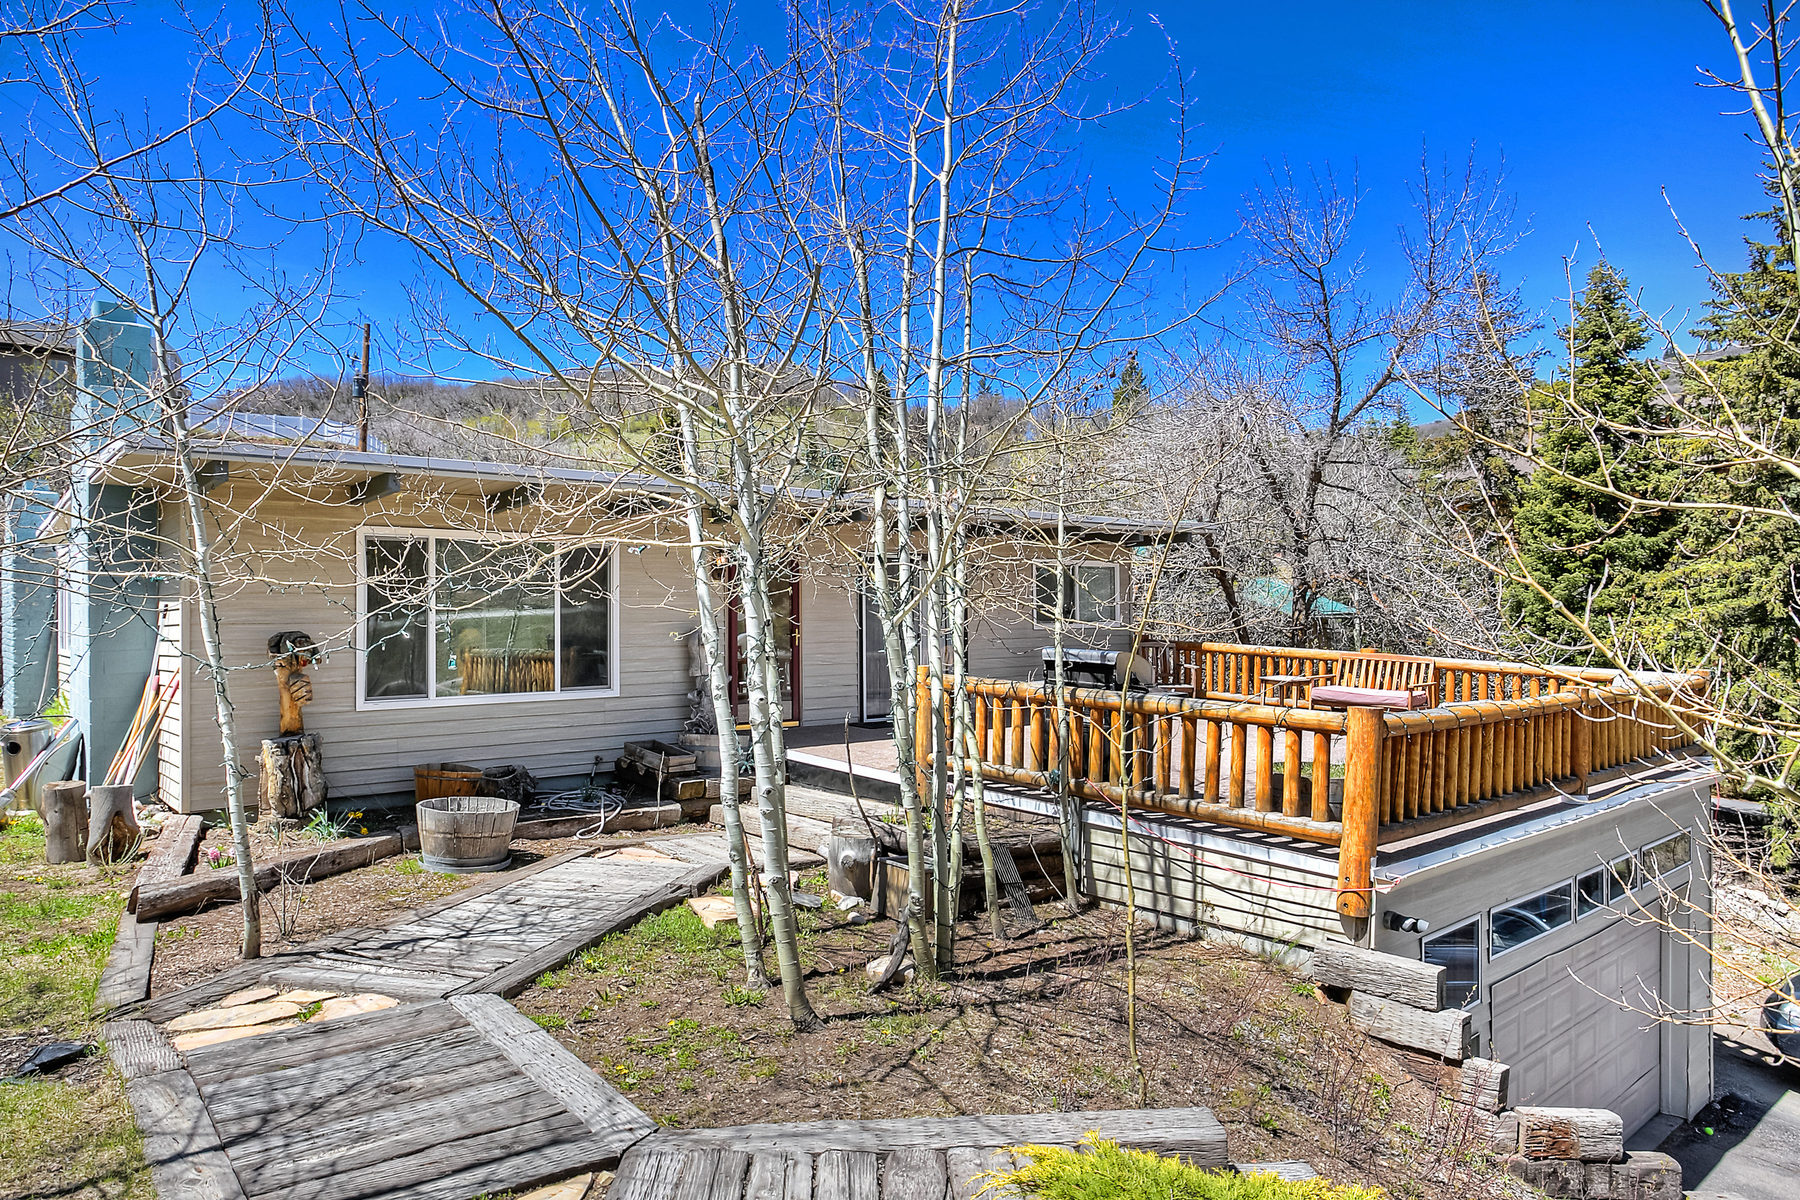 Single Family Home for Sale at Home with Rustic Feel and trees in Summit Park 140 Parkview Dr Park City, Utah 84098 United States